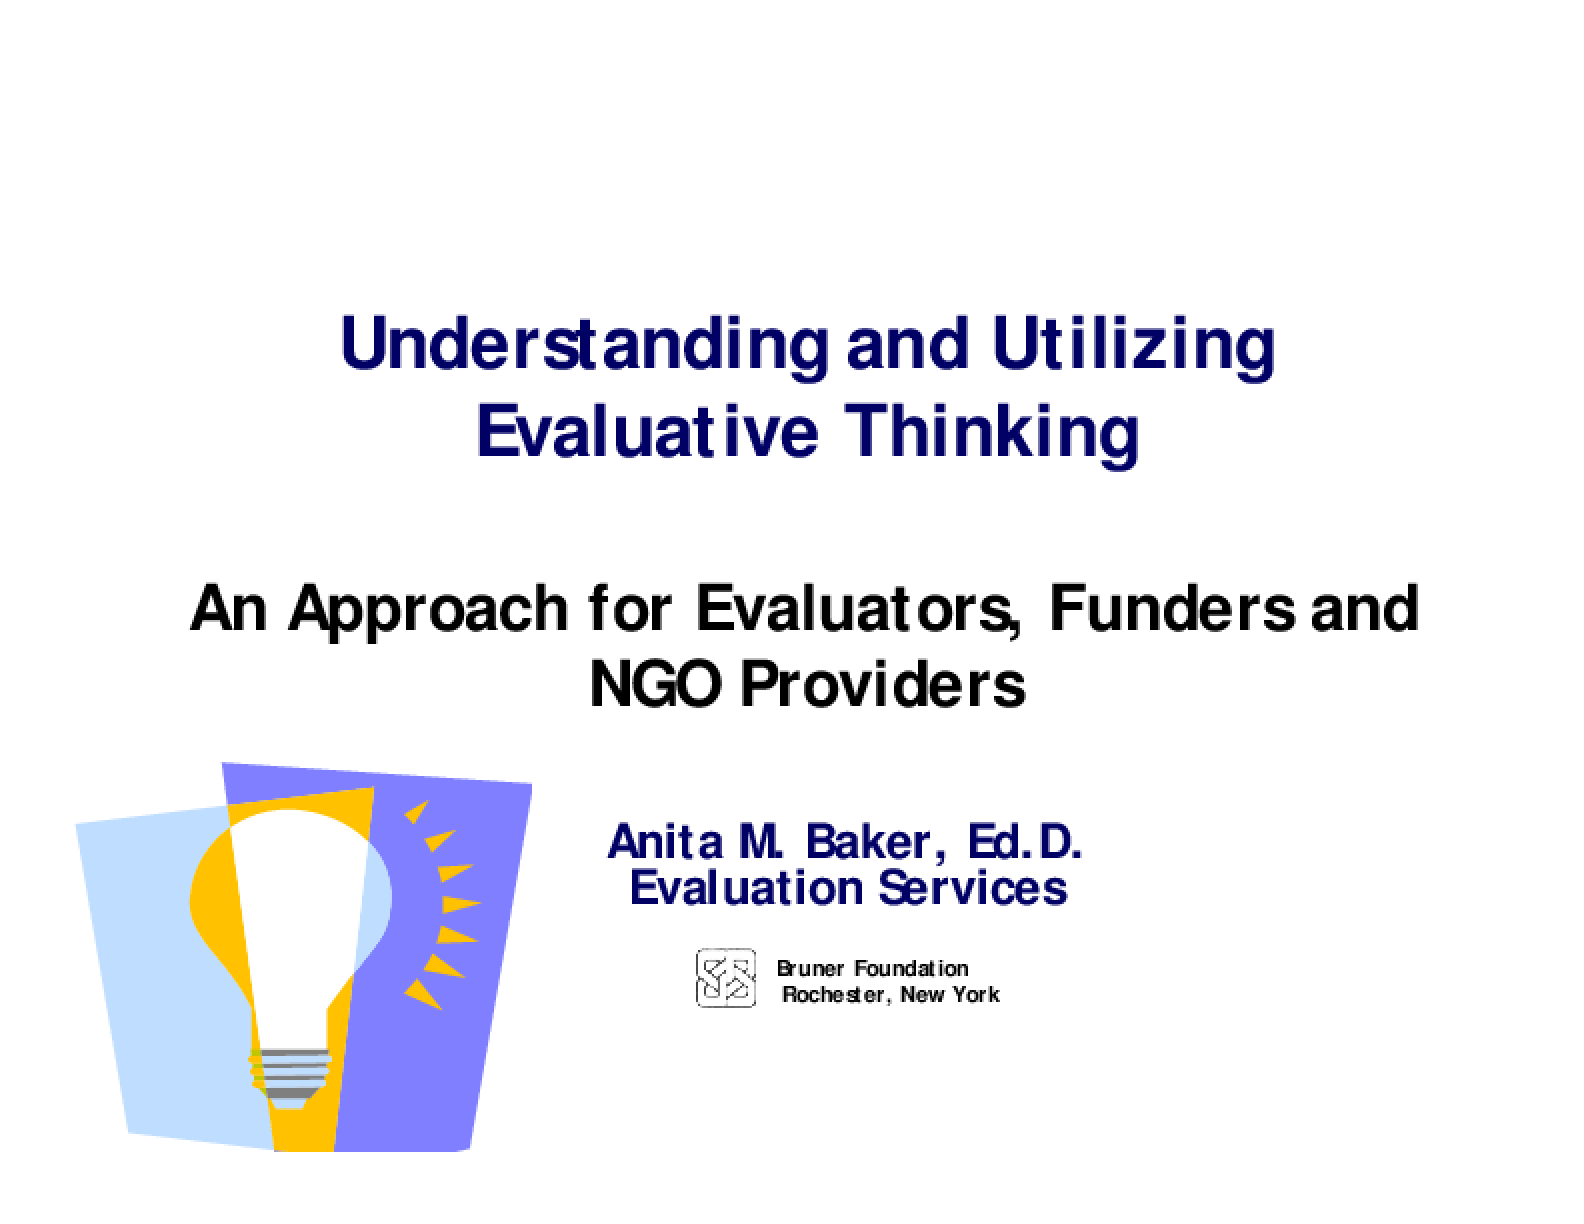 Understanding and Utilizing Evaluative Thinking: An Approach for Evaluators, Funders and NGO Providers